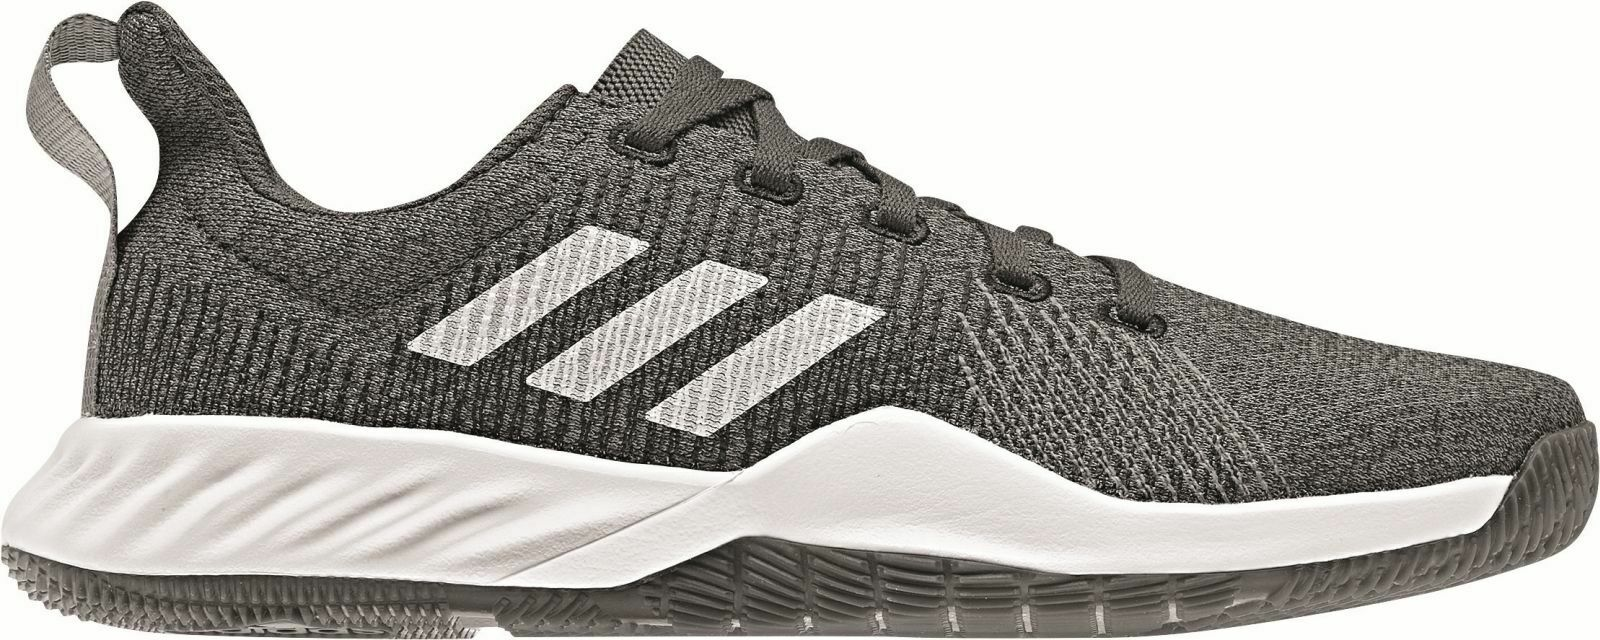 Adidas  Performance Womens Running shoes Solar LT Trainer W Grey White  check out the cheapest